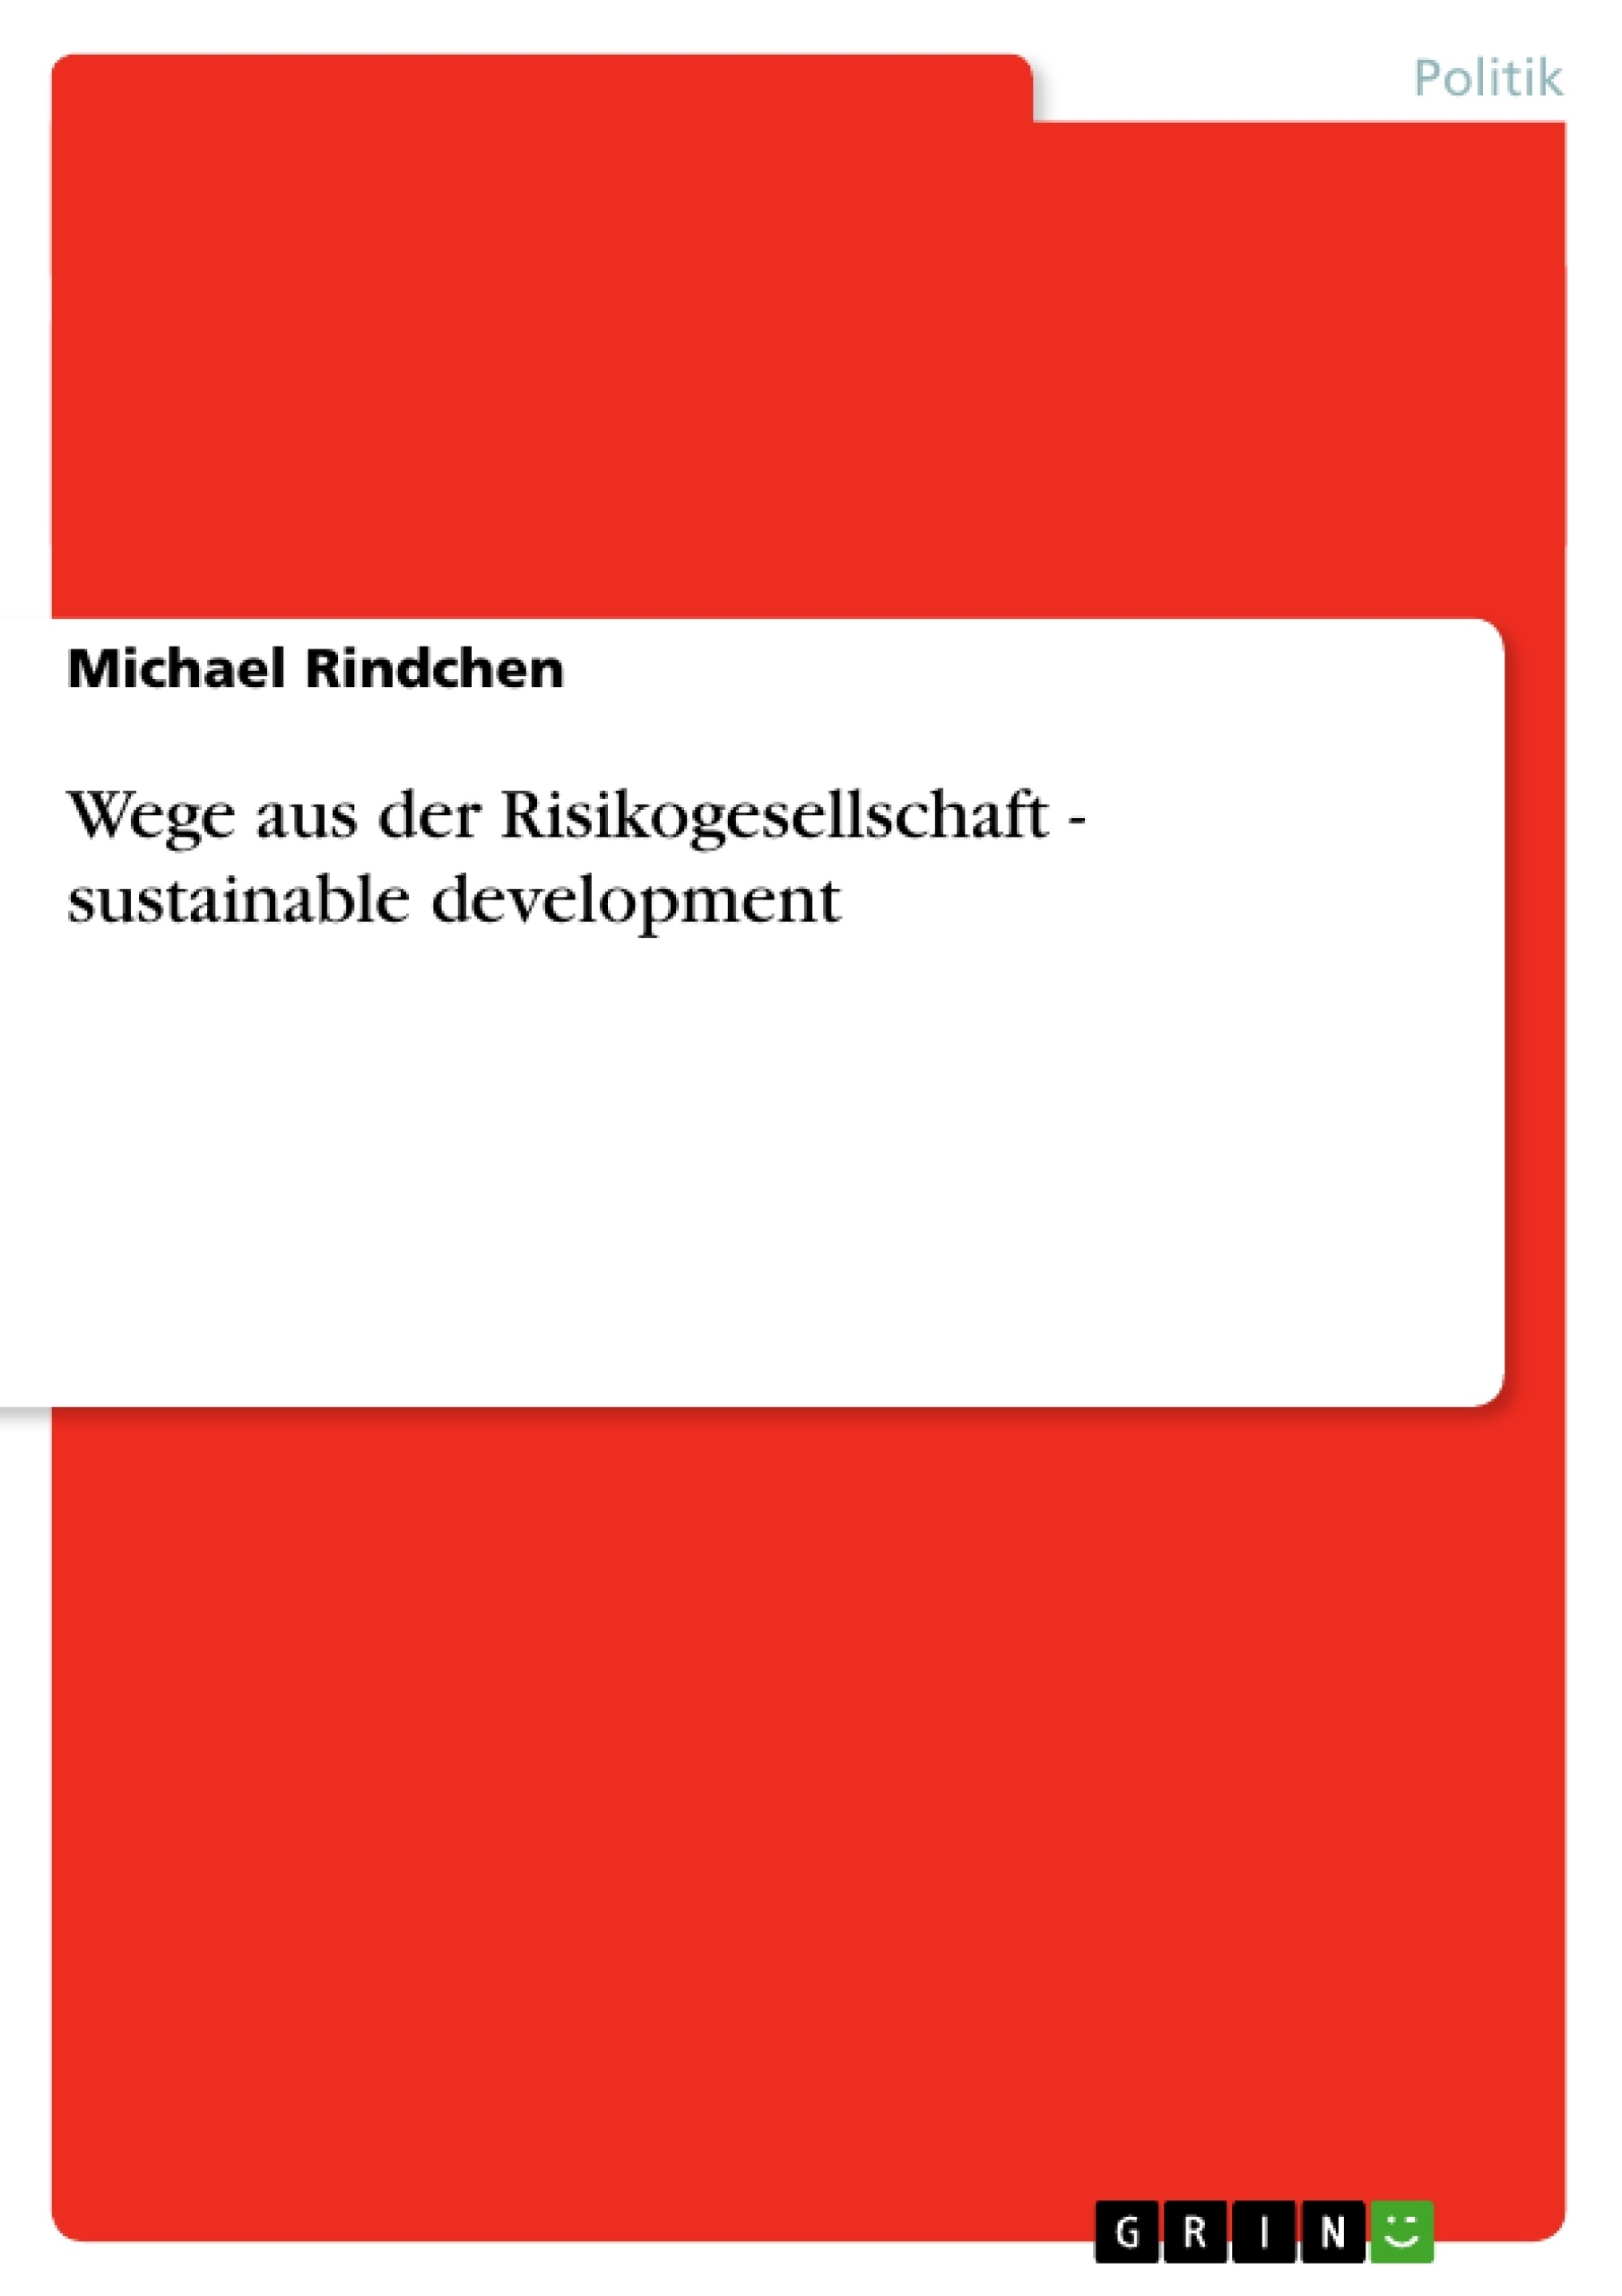 concepts of sustainable tourism and sustainable development tourism essay View sustainable tourism development research papers on academiaedu for free.